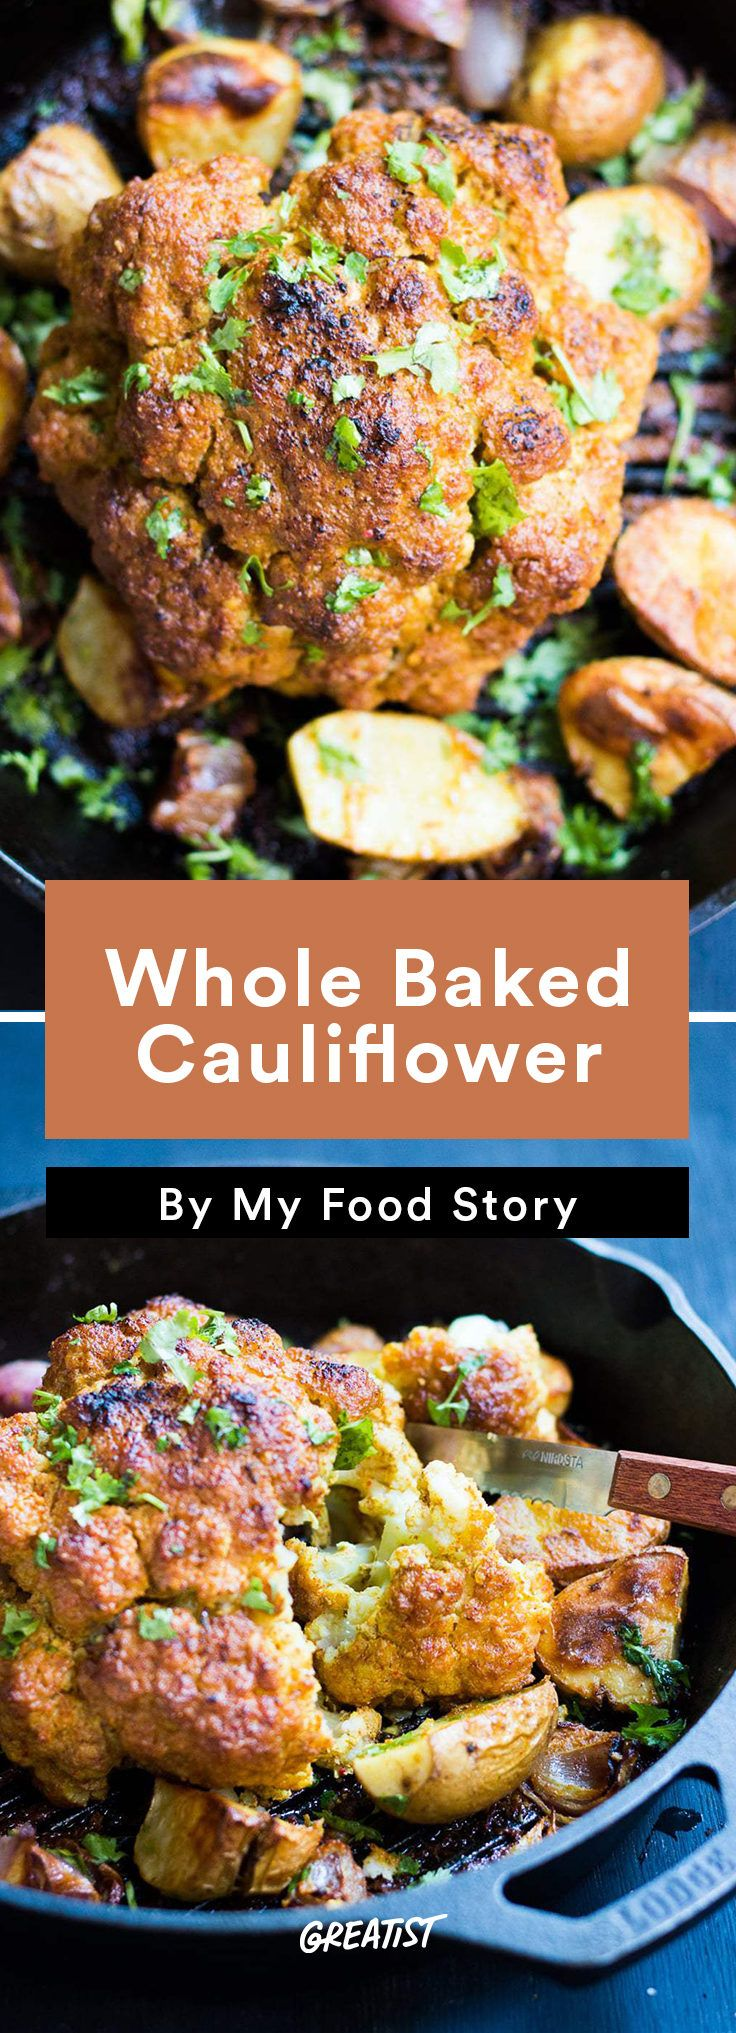 4. Whole Baked Cauliflower #healthy #indian #food http://greatist.com/eat/indian-recipes-that-are-easy-to-make-at-home